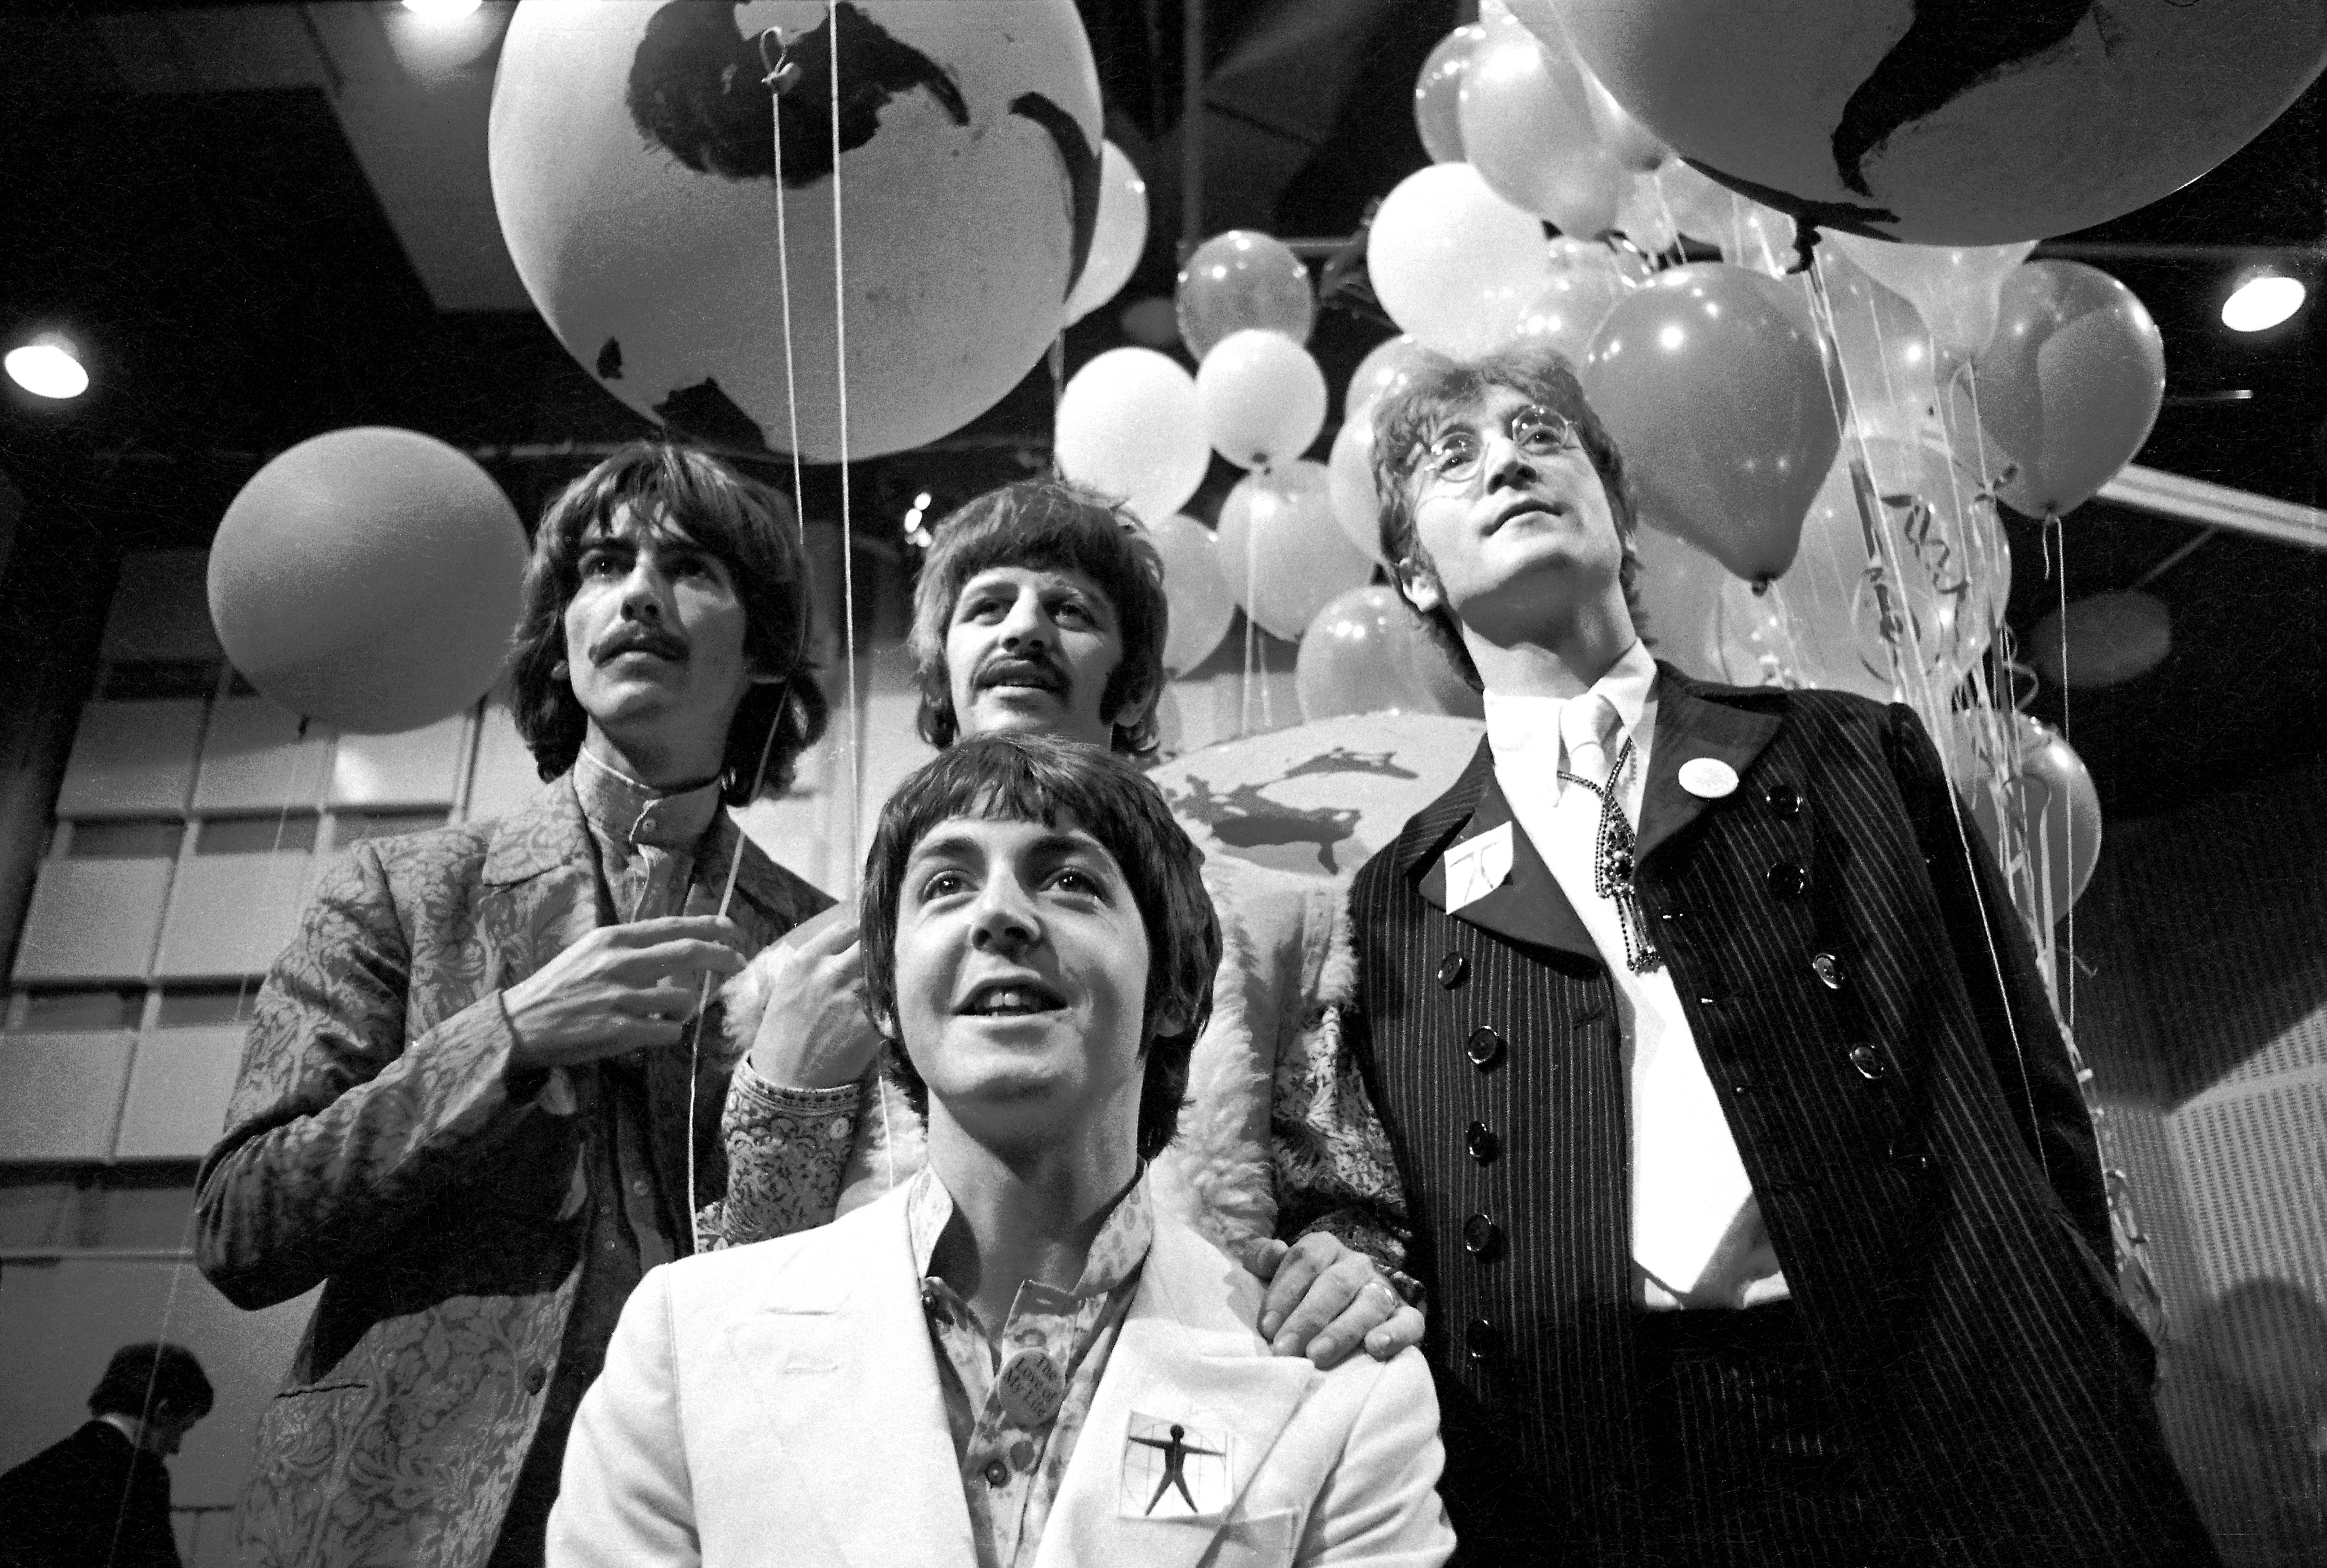 UNITED KINGDOM - JUNE 24: ABBEY RD STUDIOS Photo of BEATLES, George Harrison, Paul McCartney, Ringo Starr, John Lennon posed, group shot at press conference before performing All You Need Is Love on world satellite link up (Photo by Ivan Keeman/Redferns)